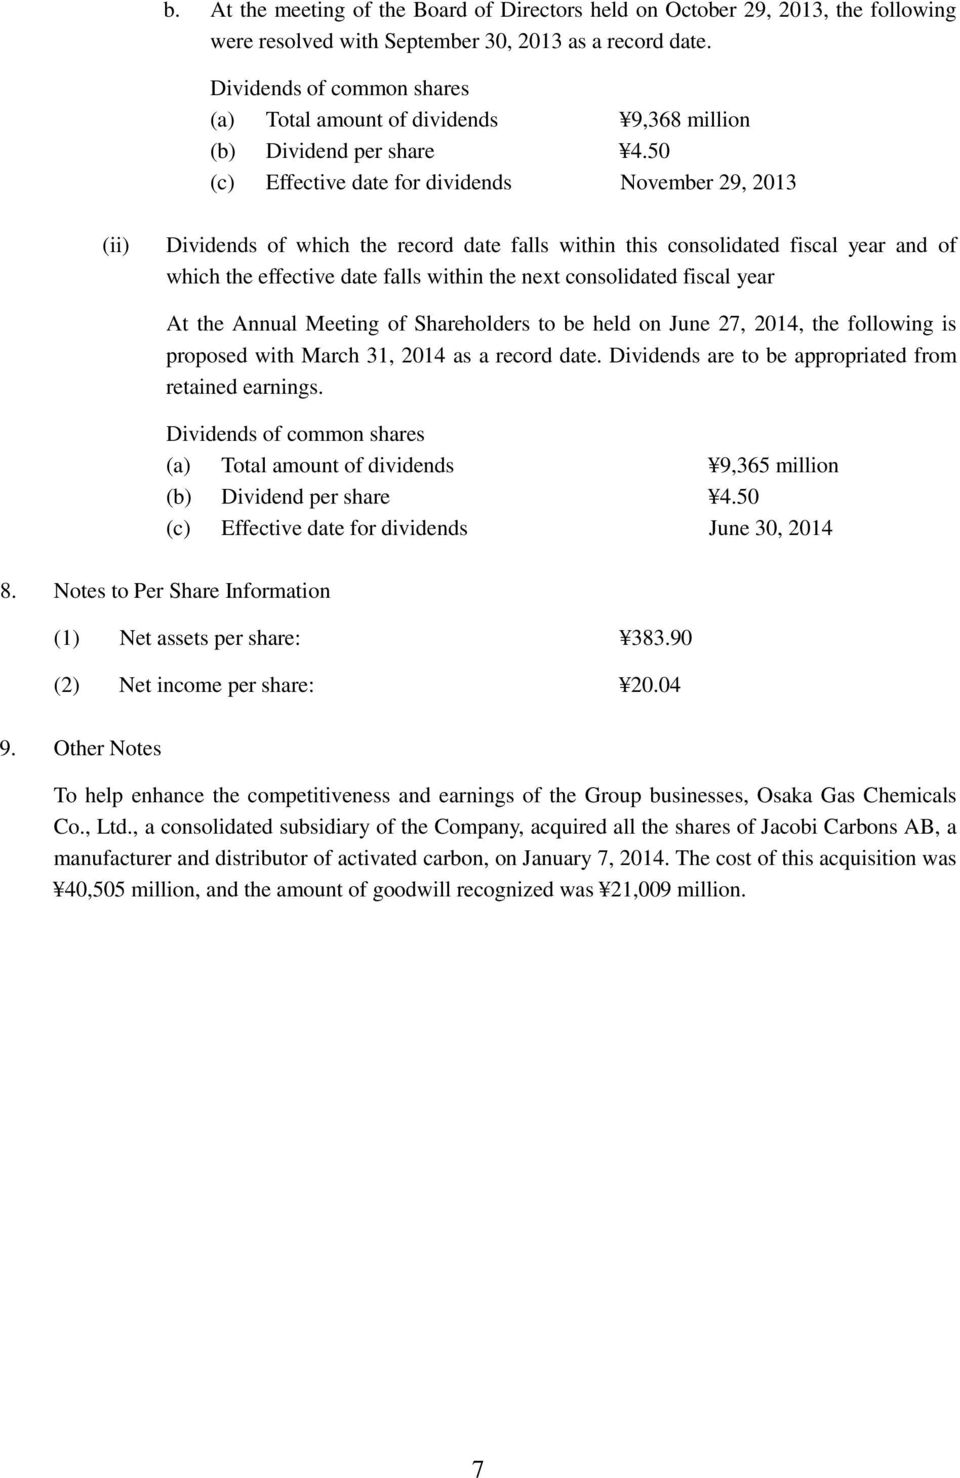 50 (c) Effective date for dividends November 29, 2013 (ii) Dividends of which the record date falls within this consolidated fiscal year and of which the effective date falls within the next